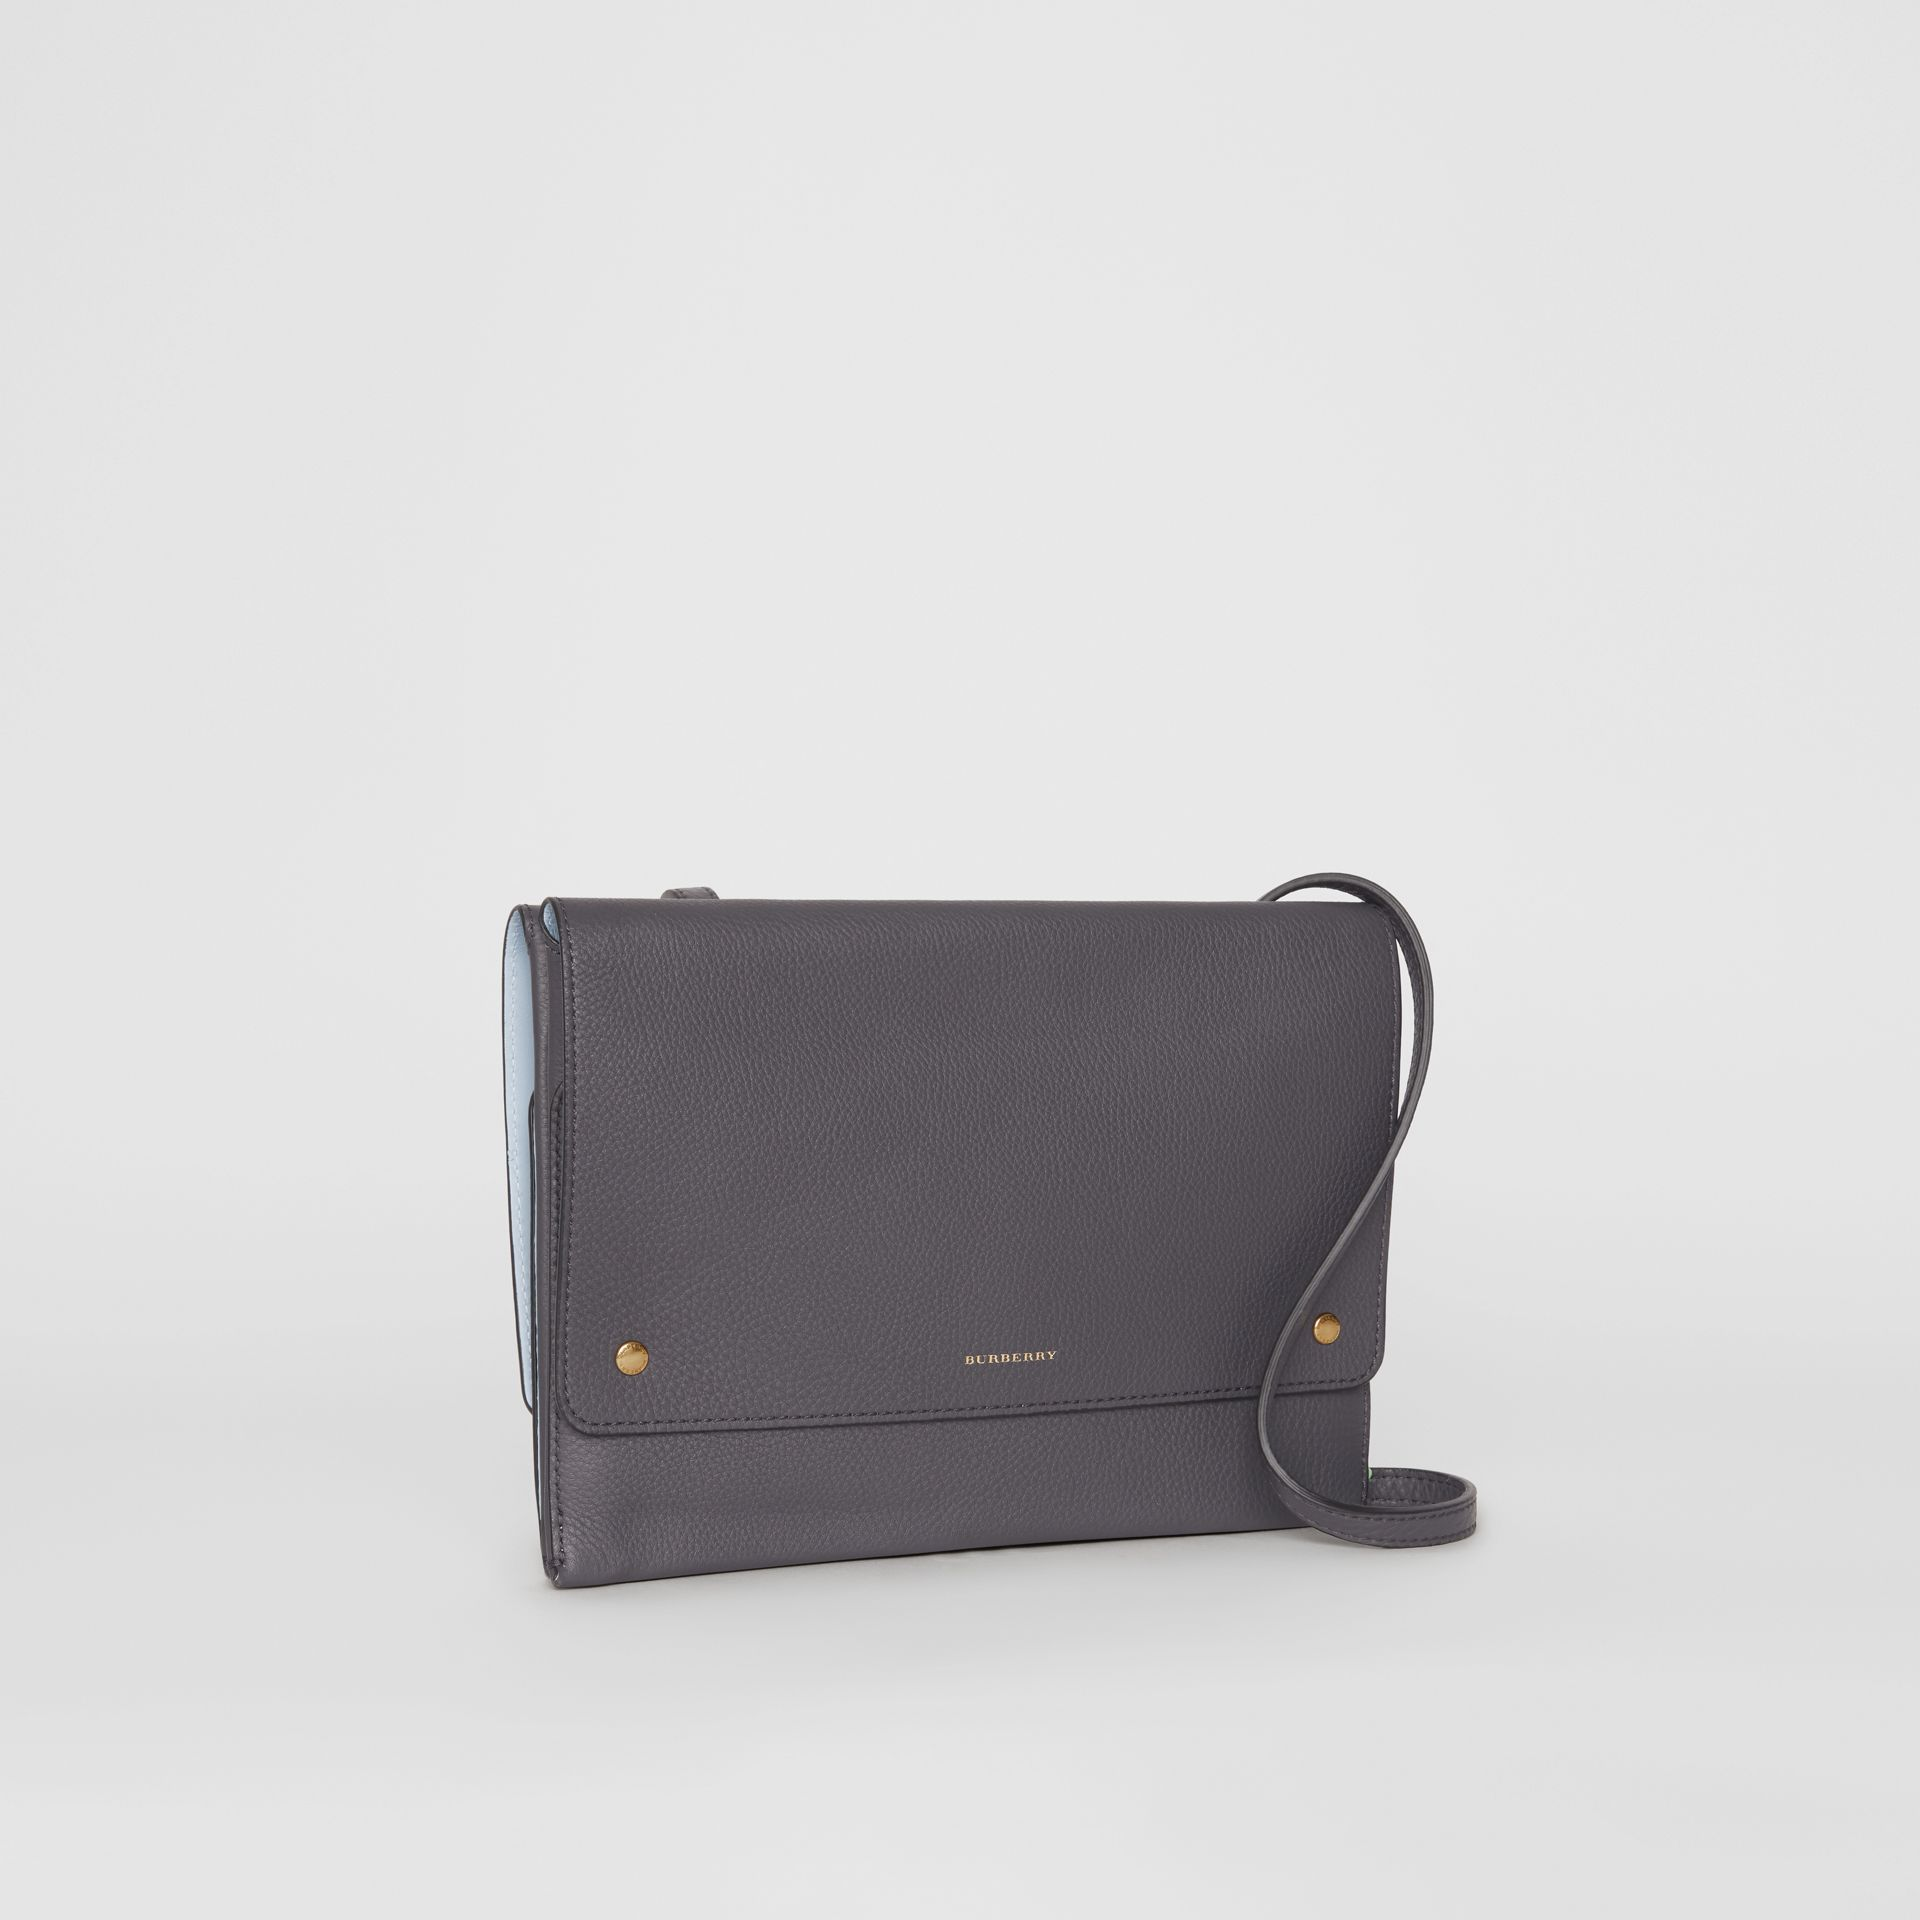 Leather Envelope Crossbody Bag in Charcoal Grey - Women | Burberry - gallery image 4